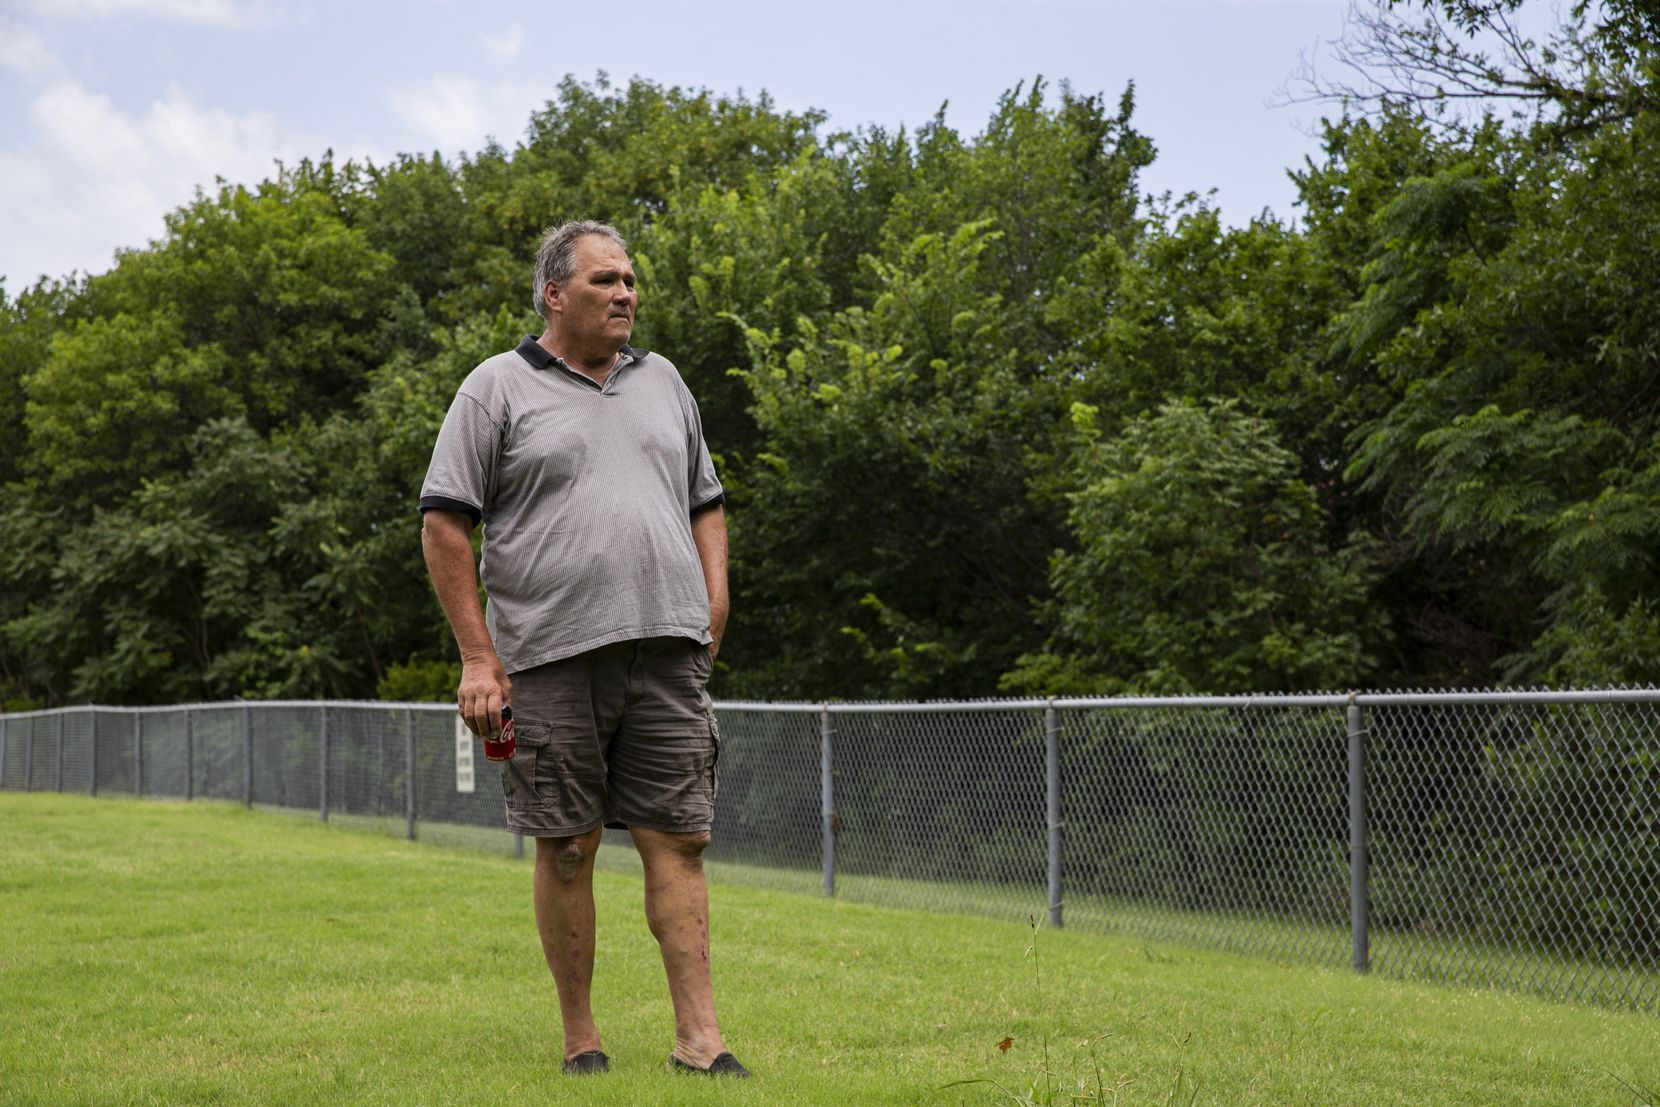 Community activist Don Phillips looks at the fence separating Park Crest Elementary School from Stream 2C4 on Monday, July 12, 2021, in Garland. (Juan Figueroa/The Dallas Morning News)